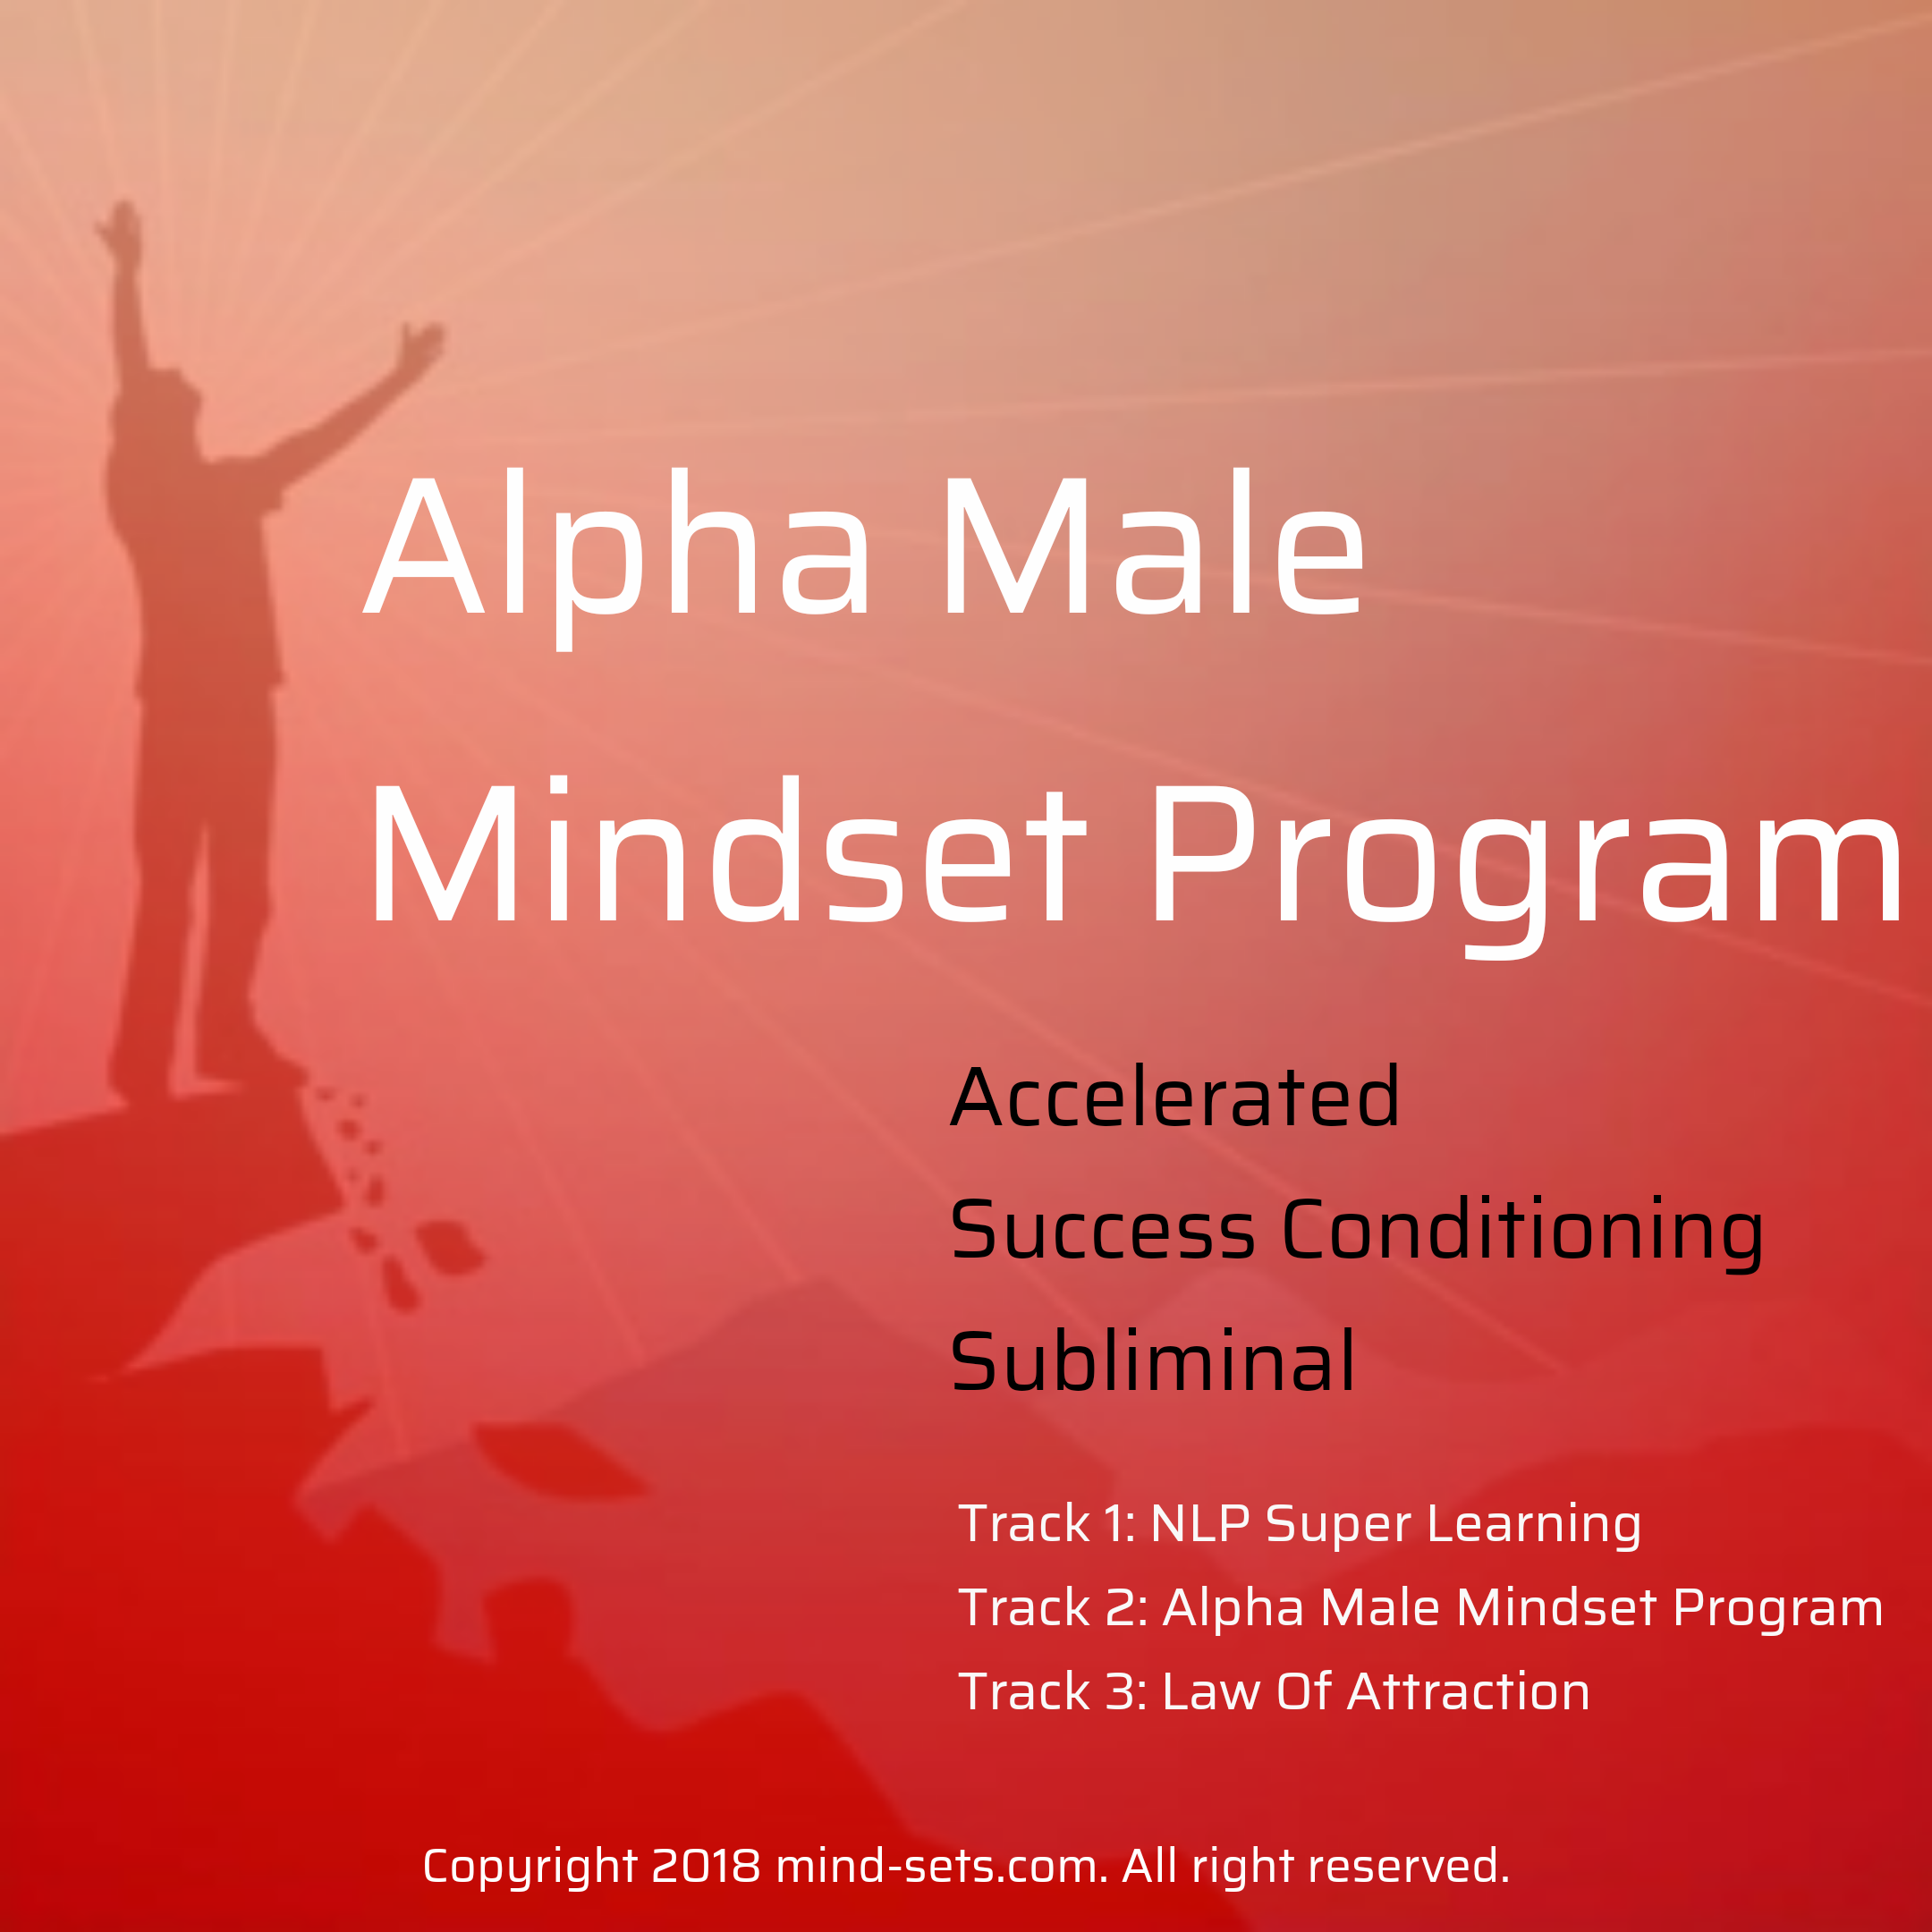 Alpha Male Mindset Program